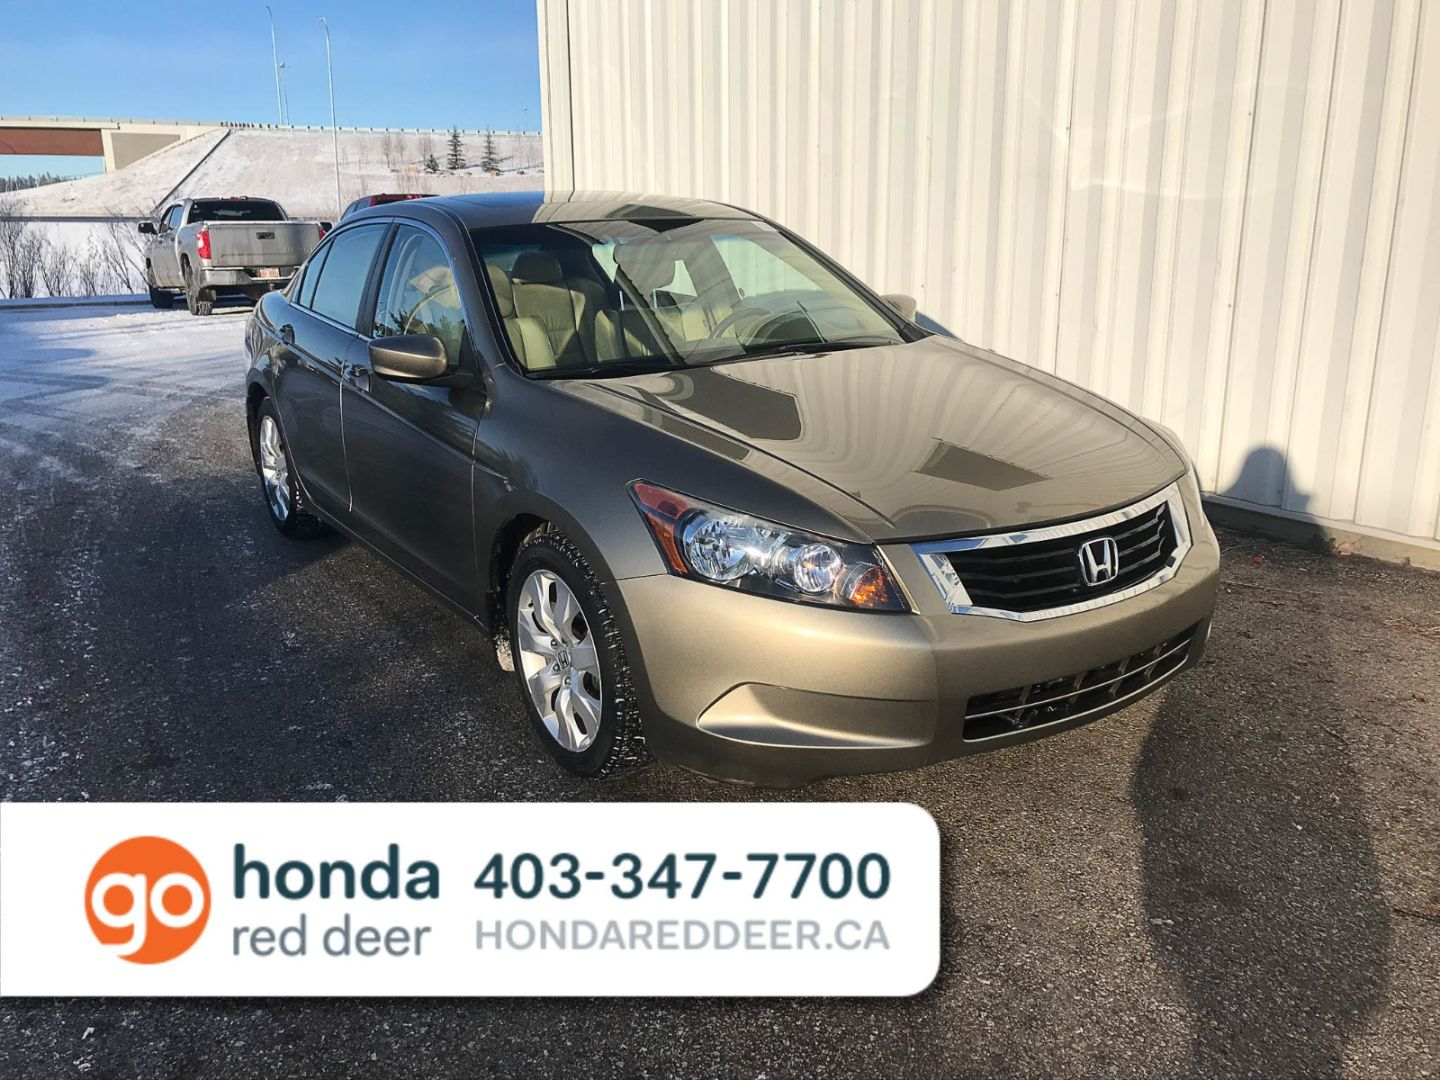 2008 Honda Accord Sdn EX-L for sale in Red Deer, Alberta